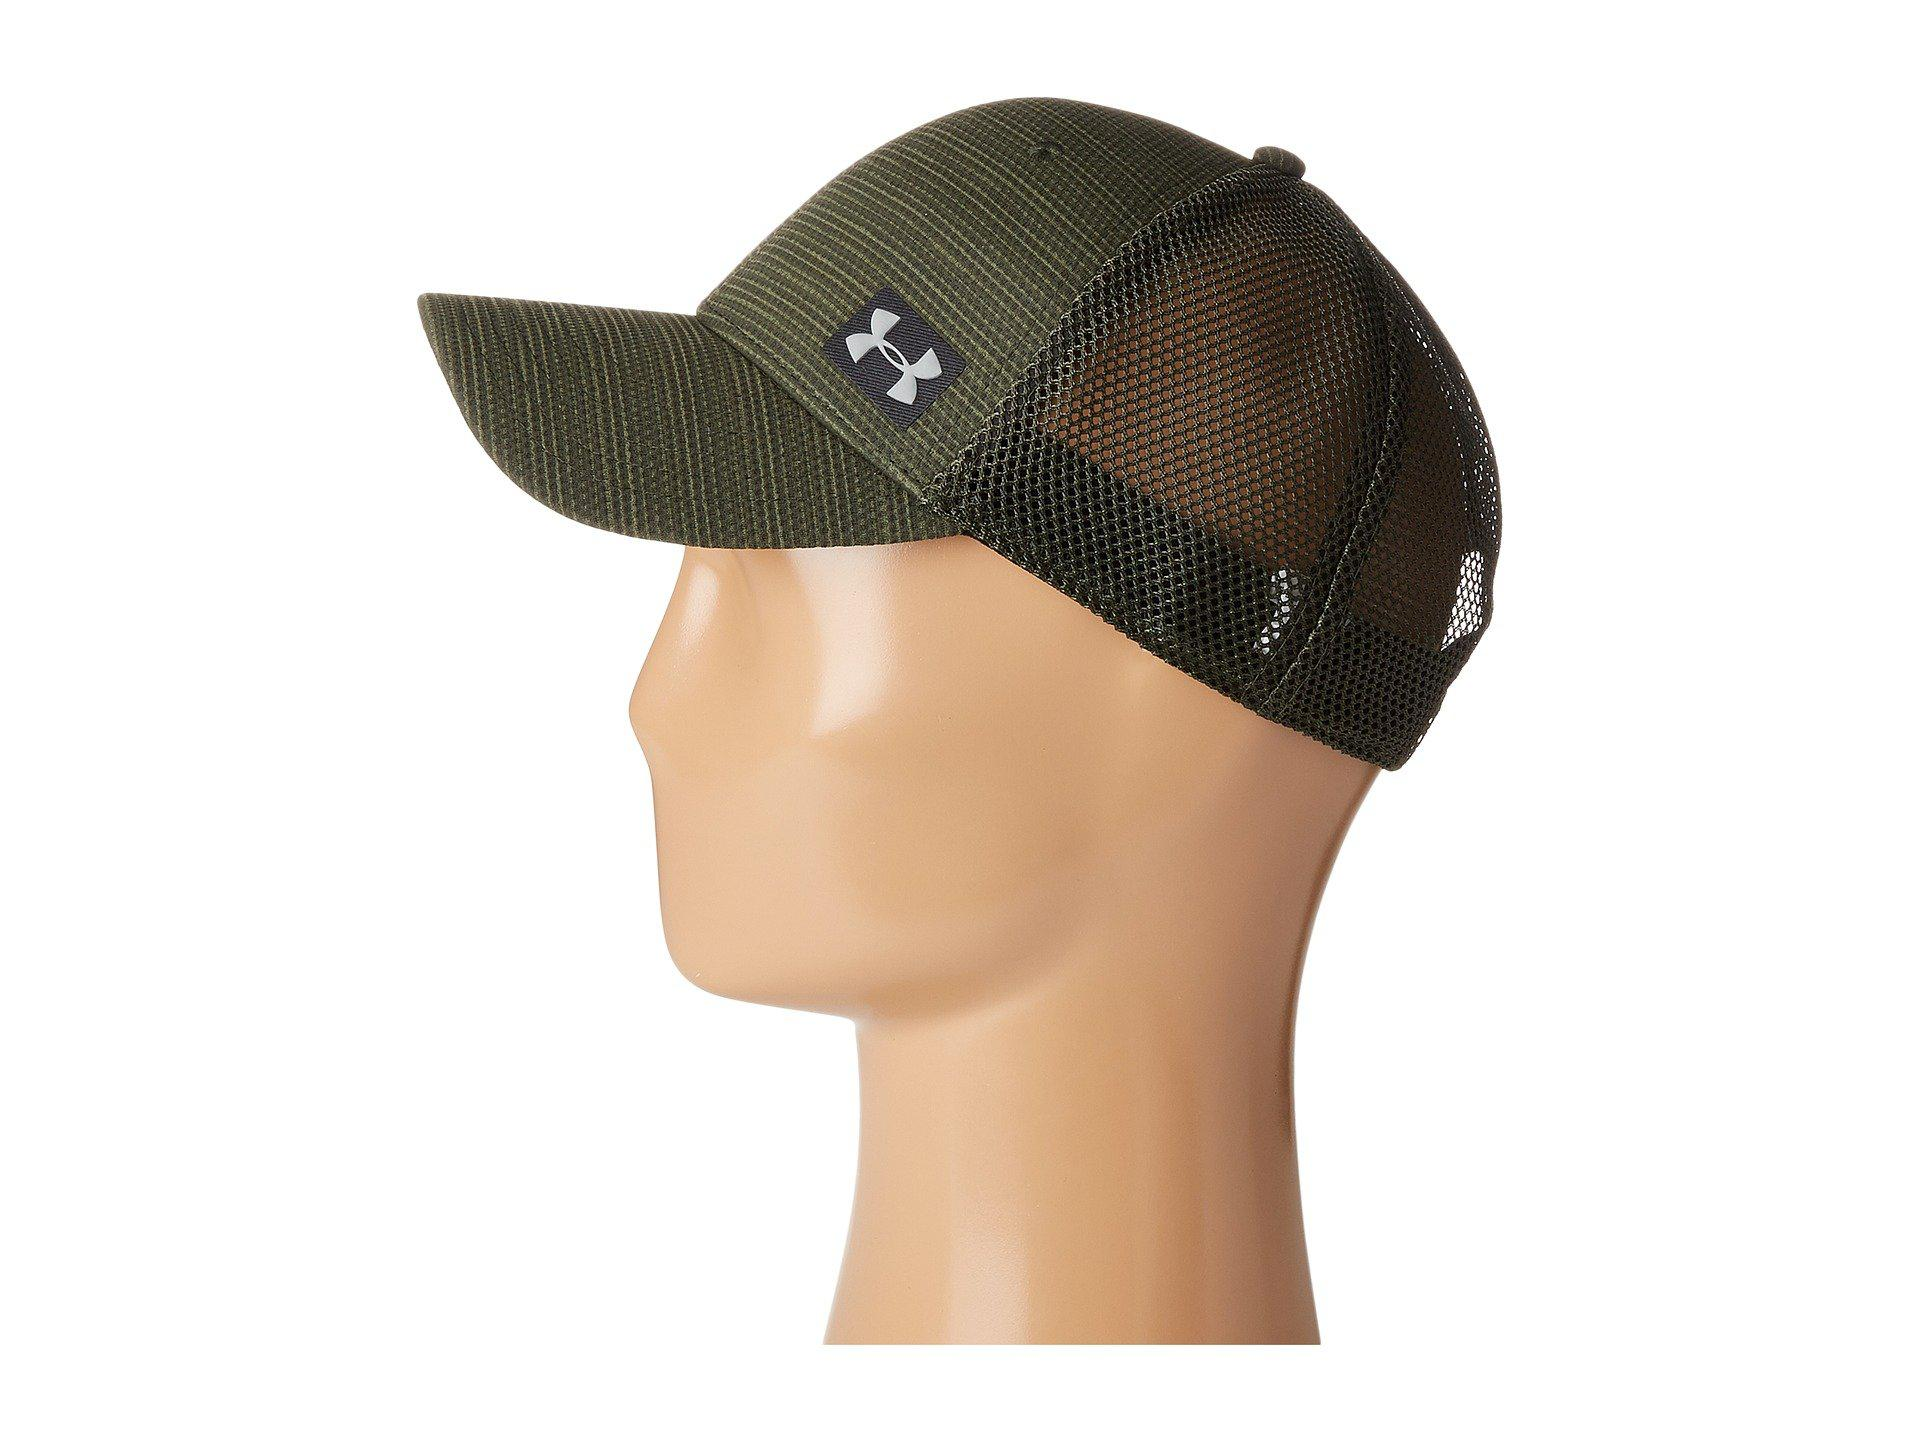 Lyst - Under Armour Ua Blitz Trucker Cap in Green for Men 00bf4abbdb9